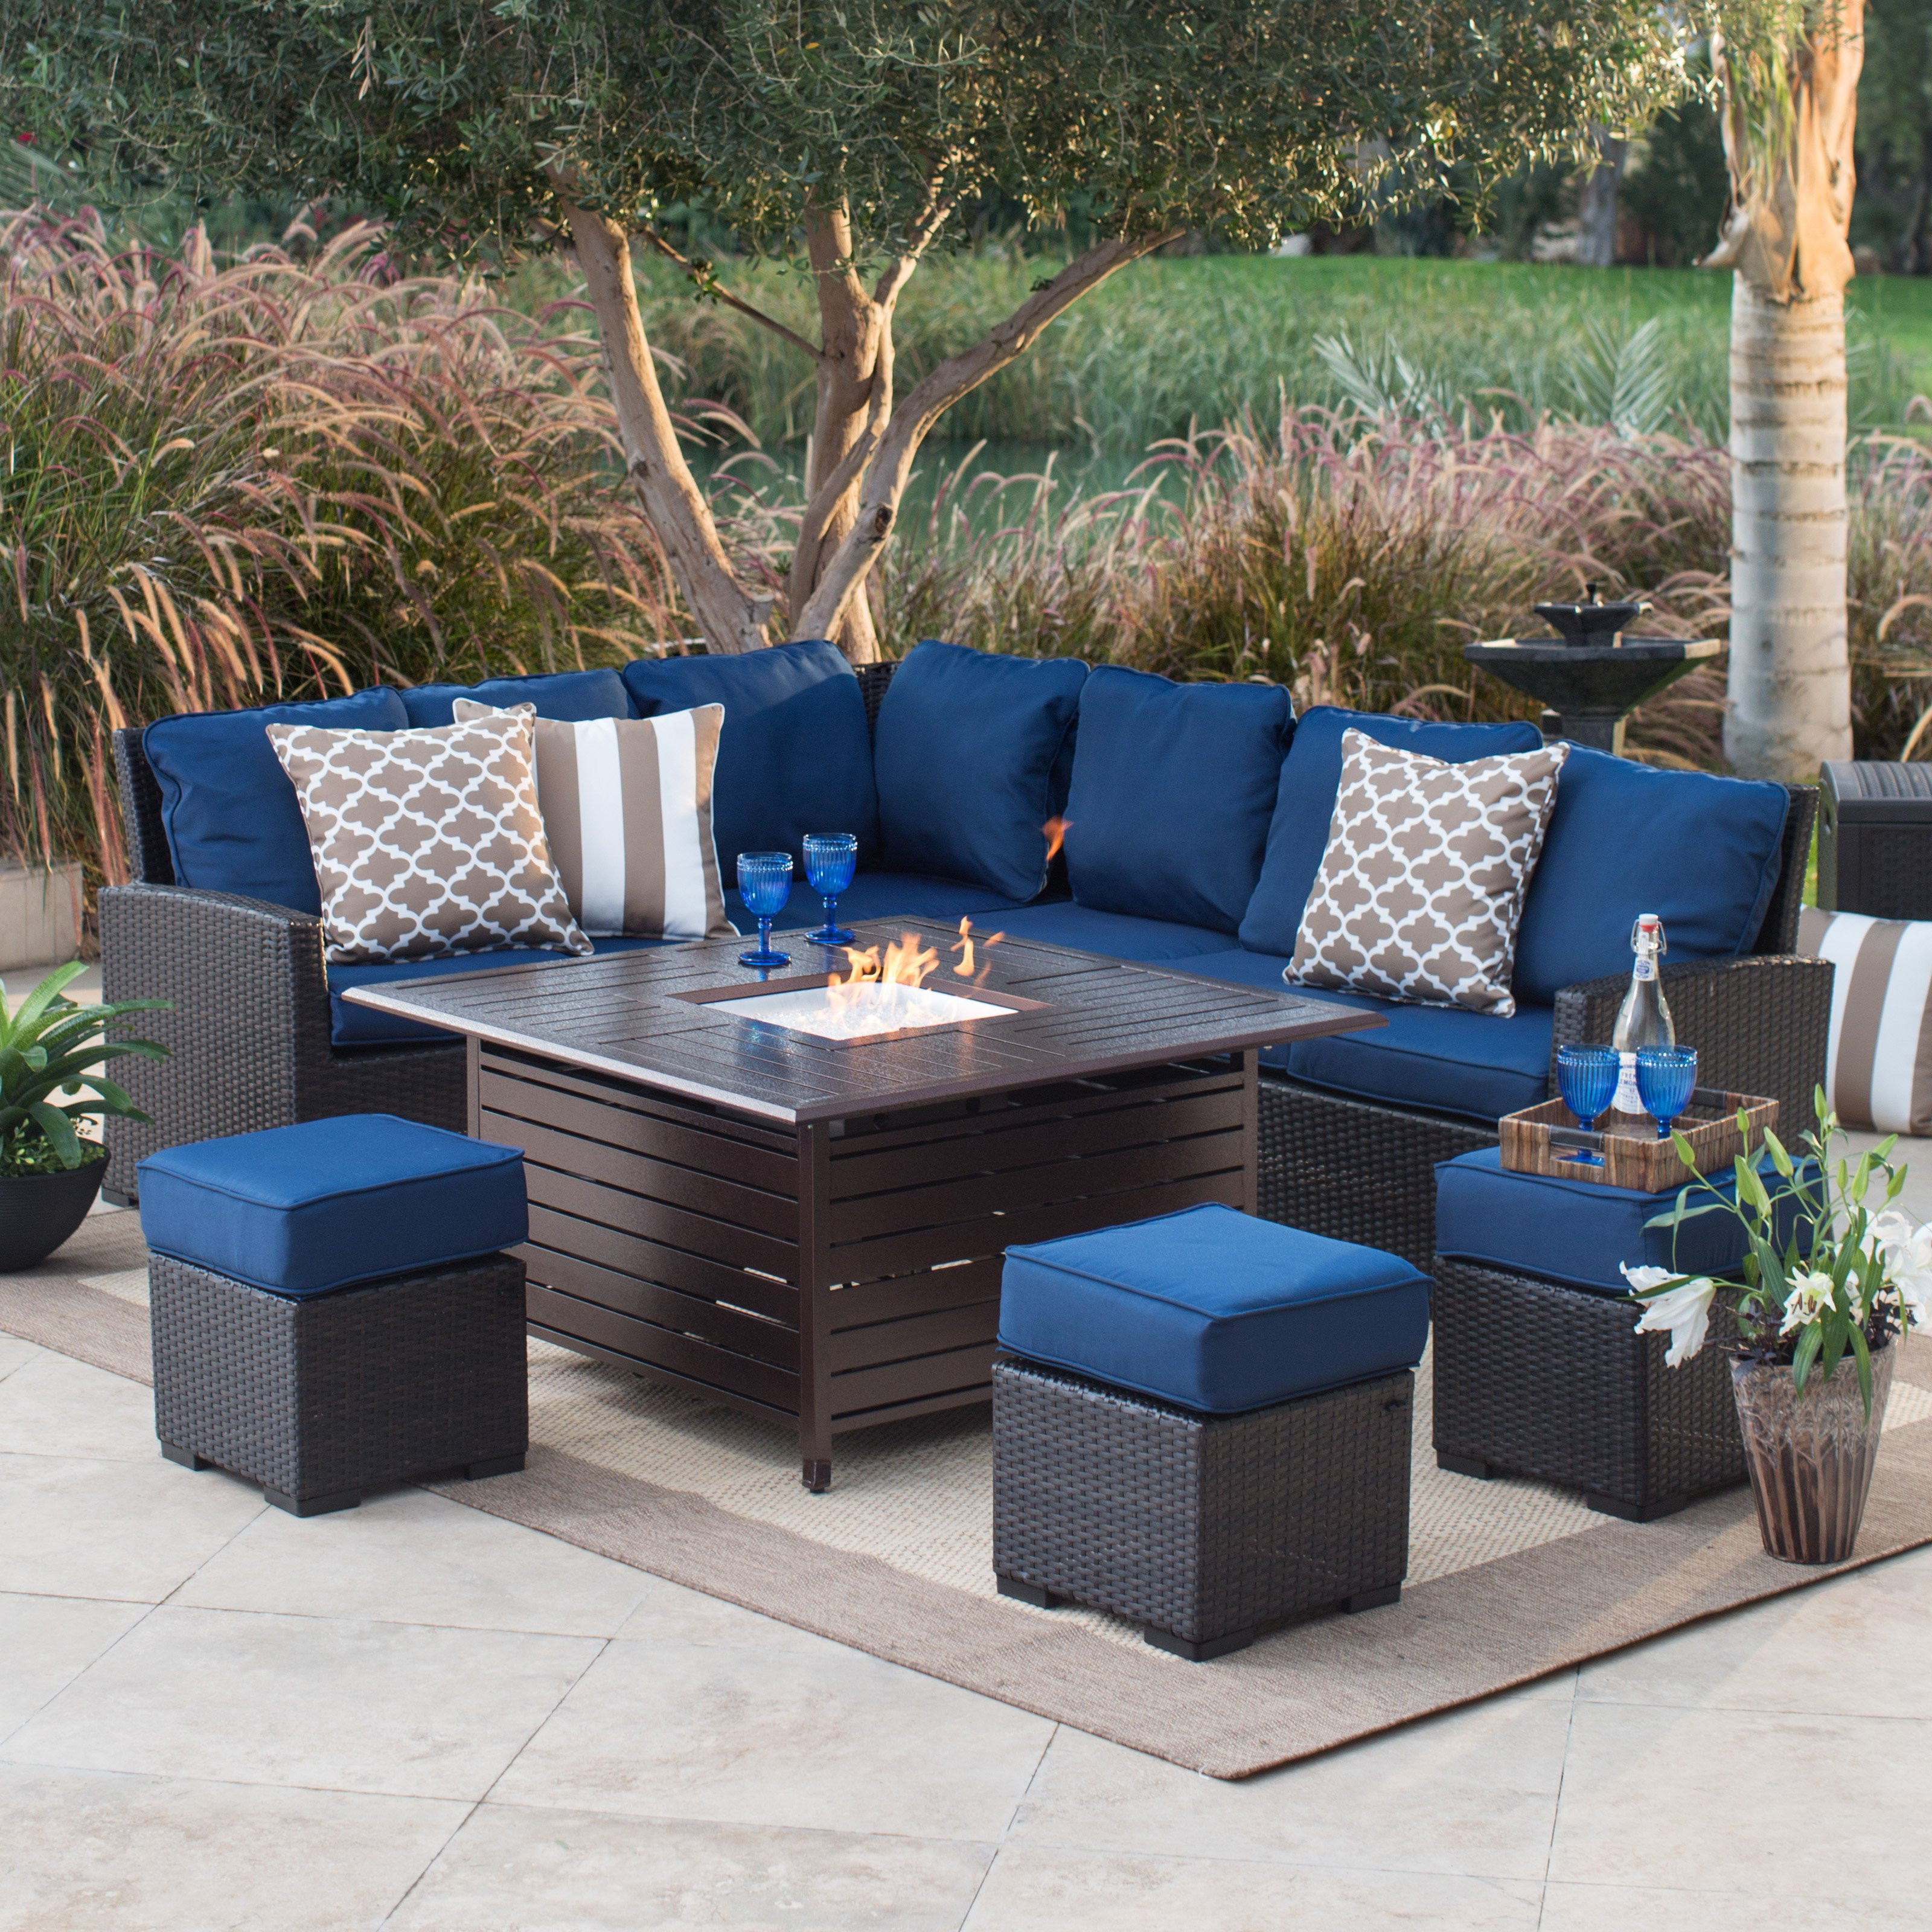 Best ideas about Outdoor Fire Pit Sets . Save or Pin Fire Pit Table Set on Hayneedle Patio Fire Pit Seating Now.